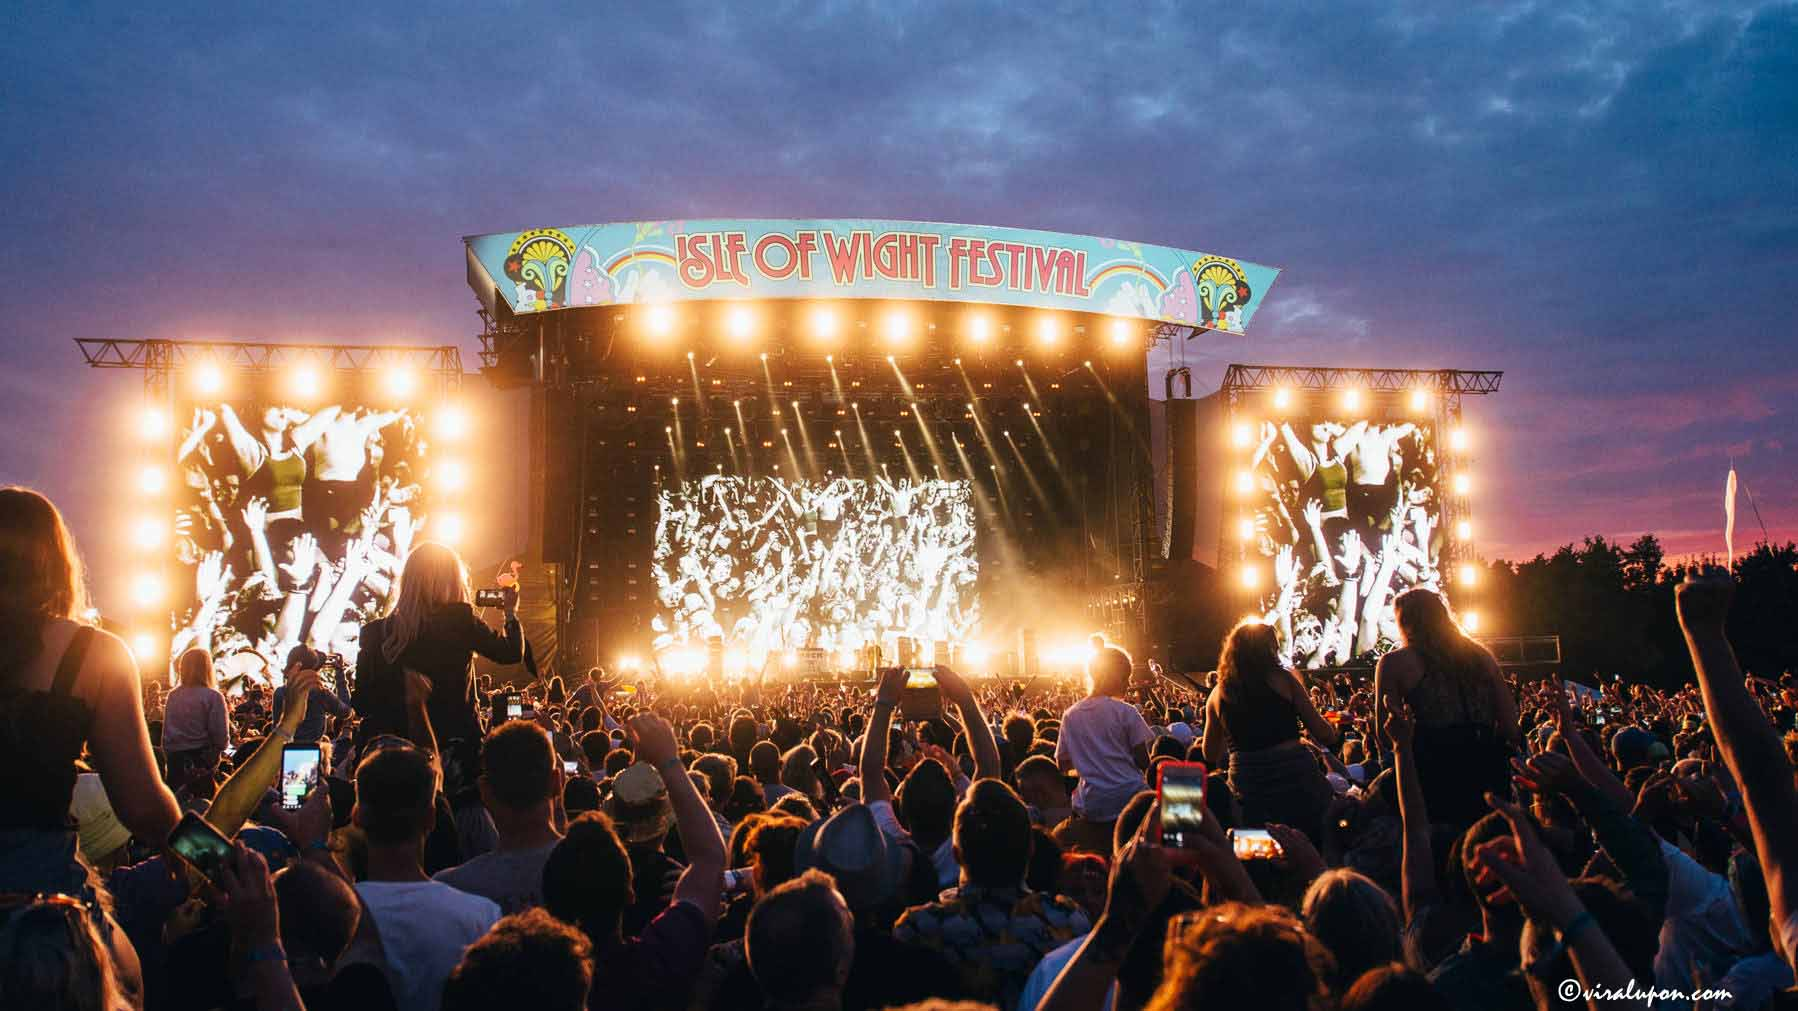 Isle of Wight Festival | Country music festival